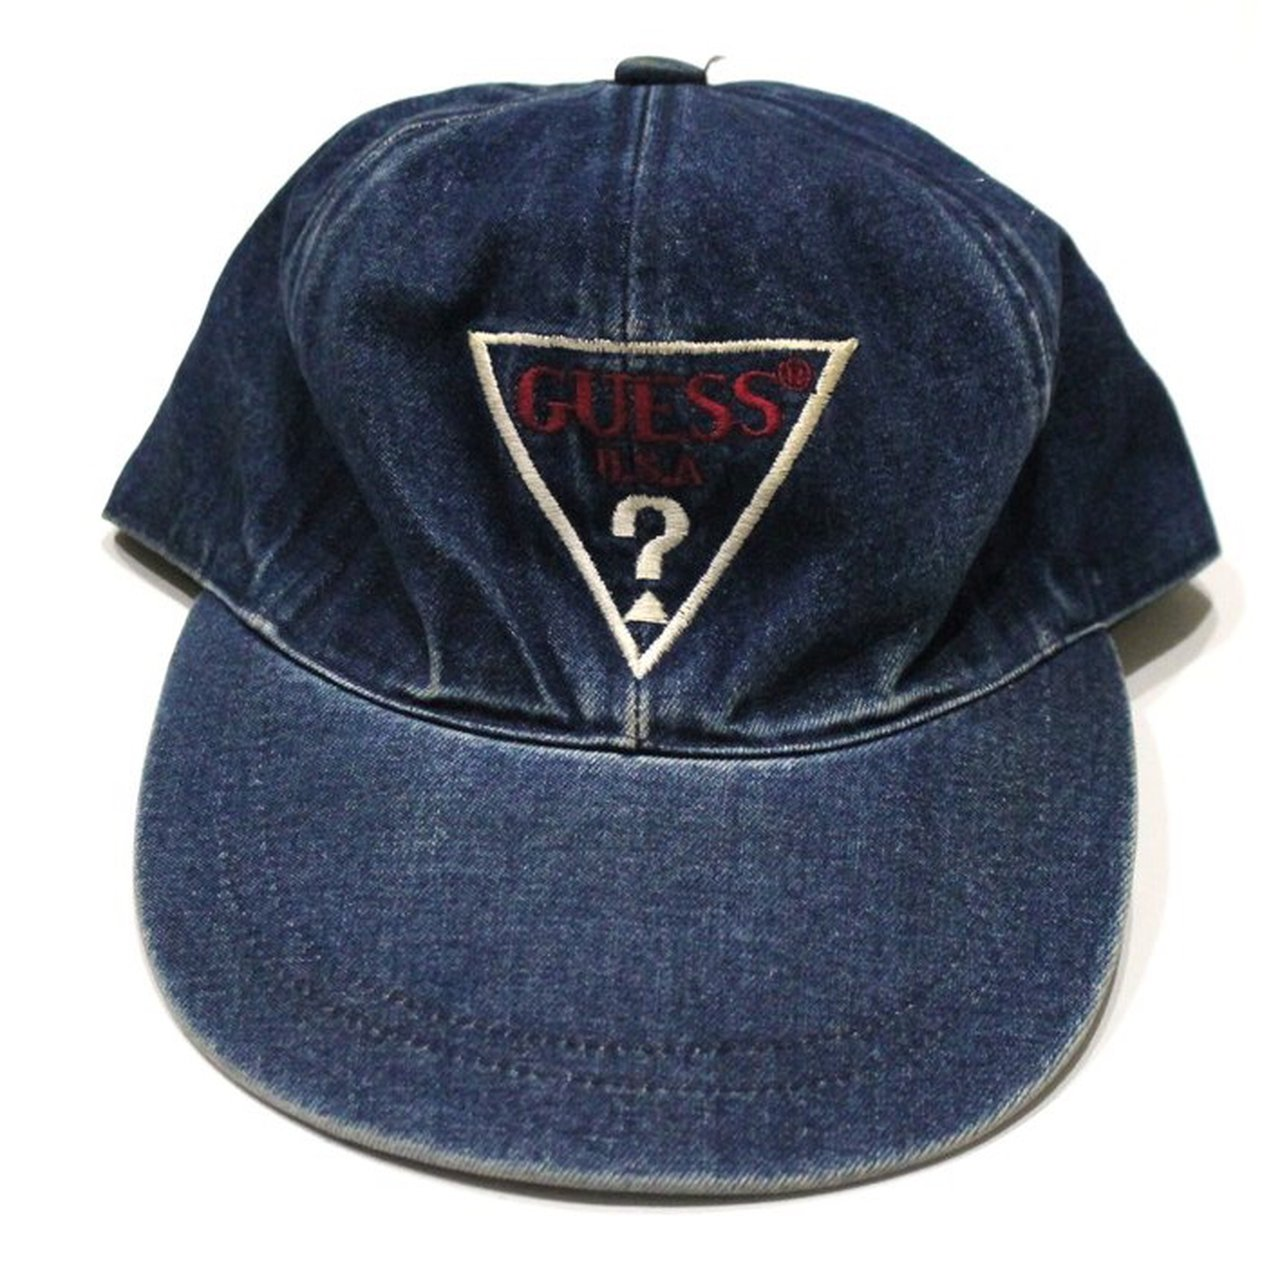 6dad6d6ed59a5 Vintage Guess Logo Denim cap. All products listed are and - Depop